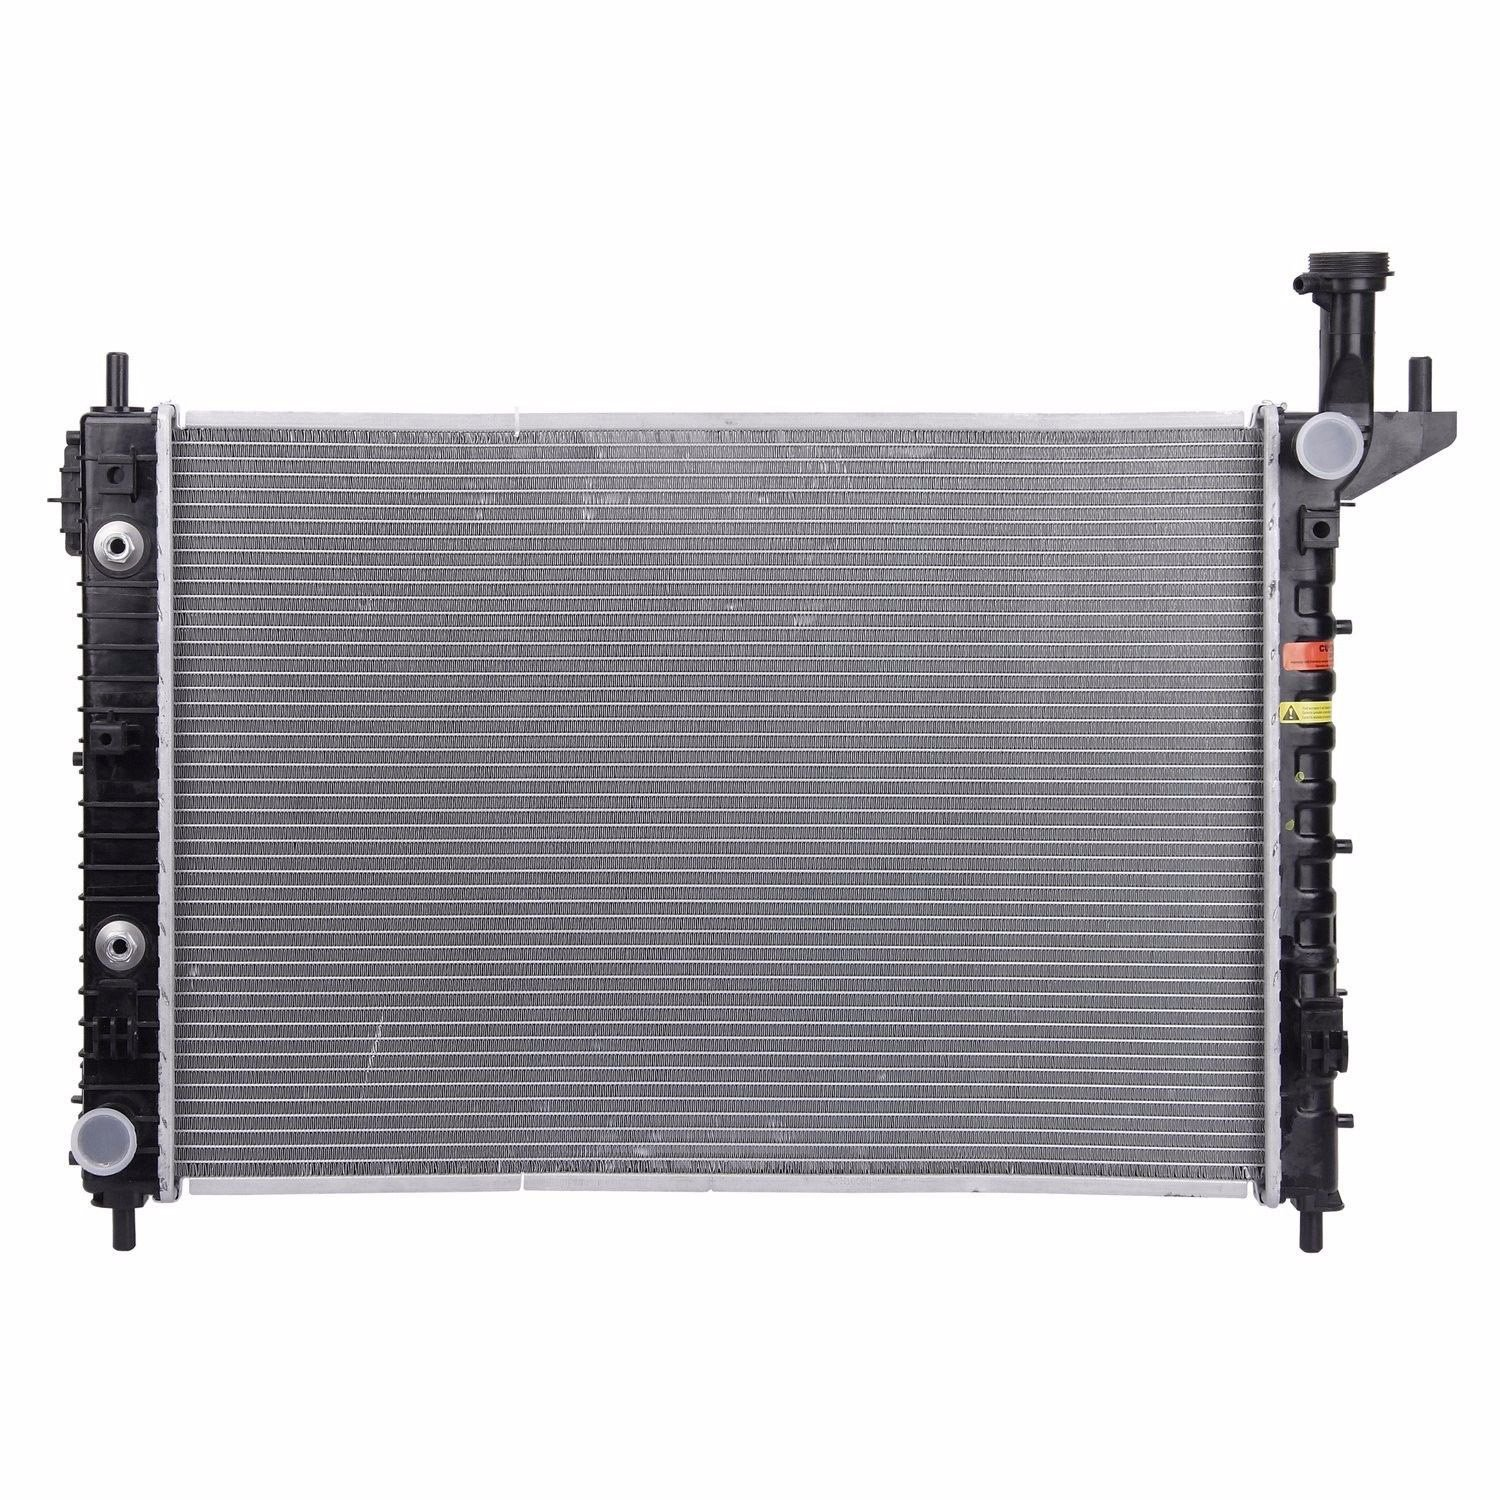 SCITOO 13007 Radiator fits 2008-2014 Buick Enclave 2009-2015 Chevrolet Traverse 2008-2015 GMC Acadia 2007-2010 Saturn Outlook 3.6L